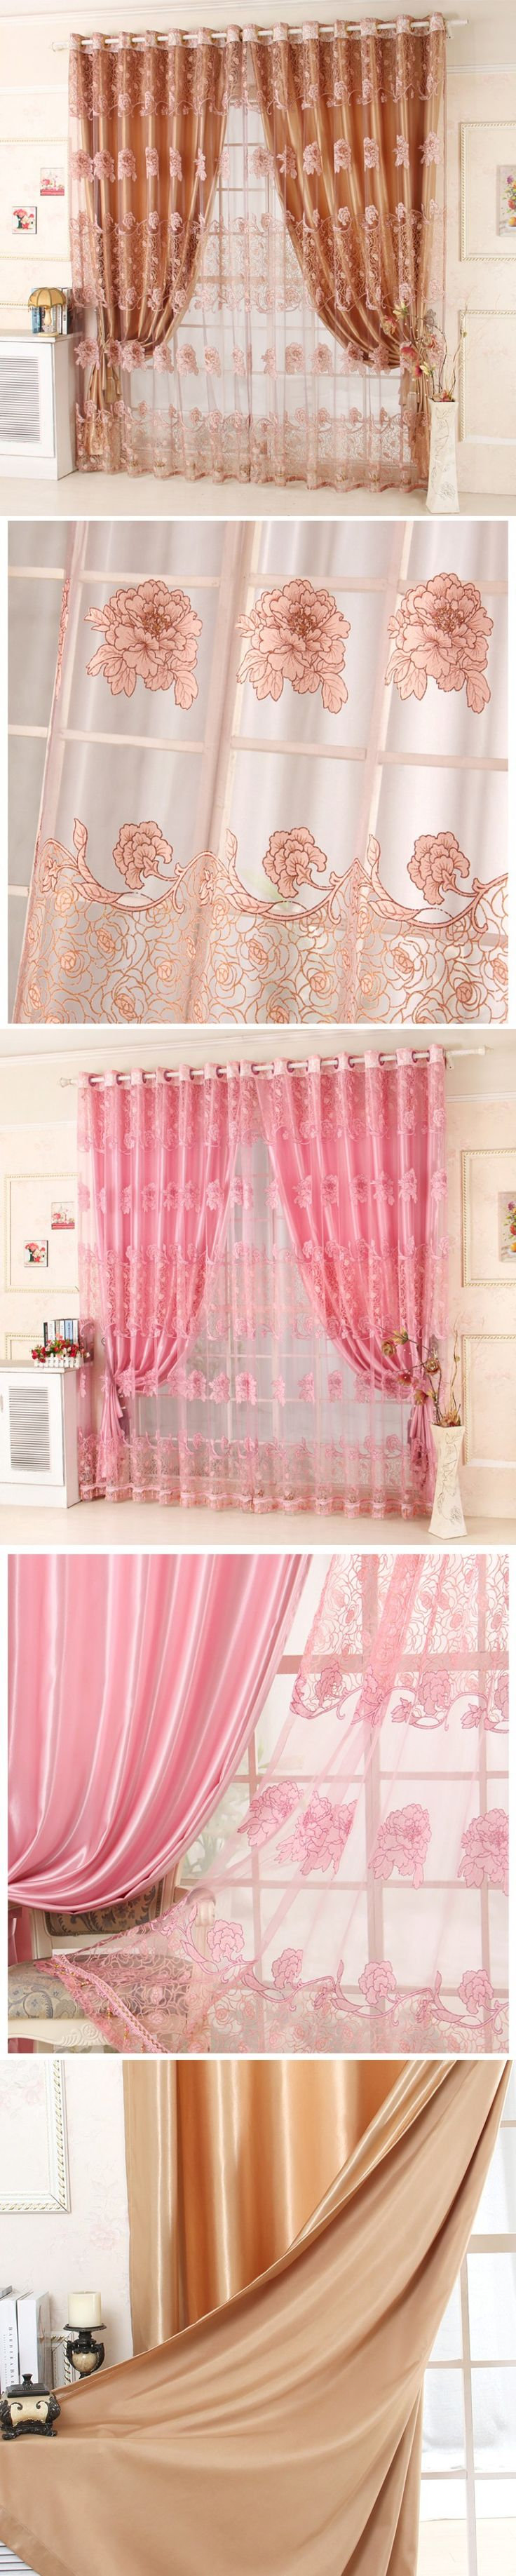 readymade modern voile tulle curtains windows luxury sheer cortinas blackout drapes for living room